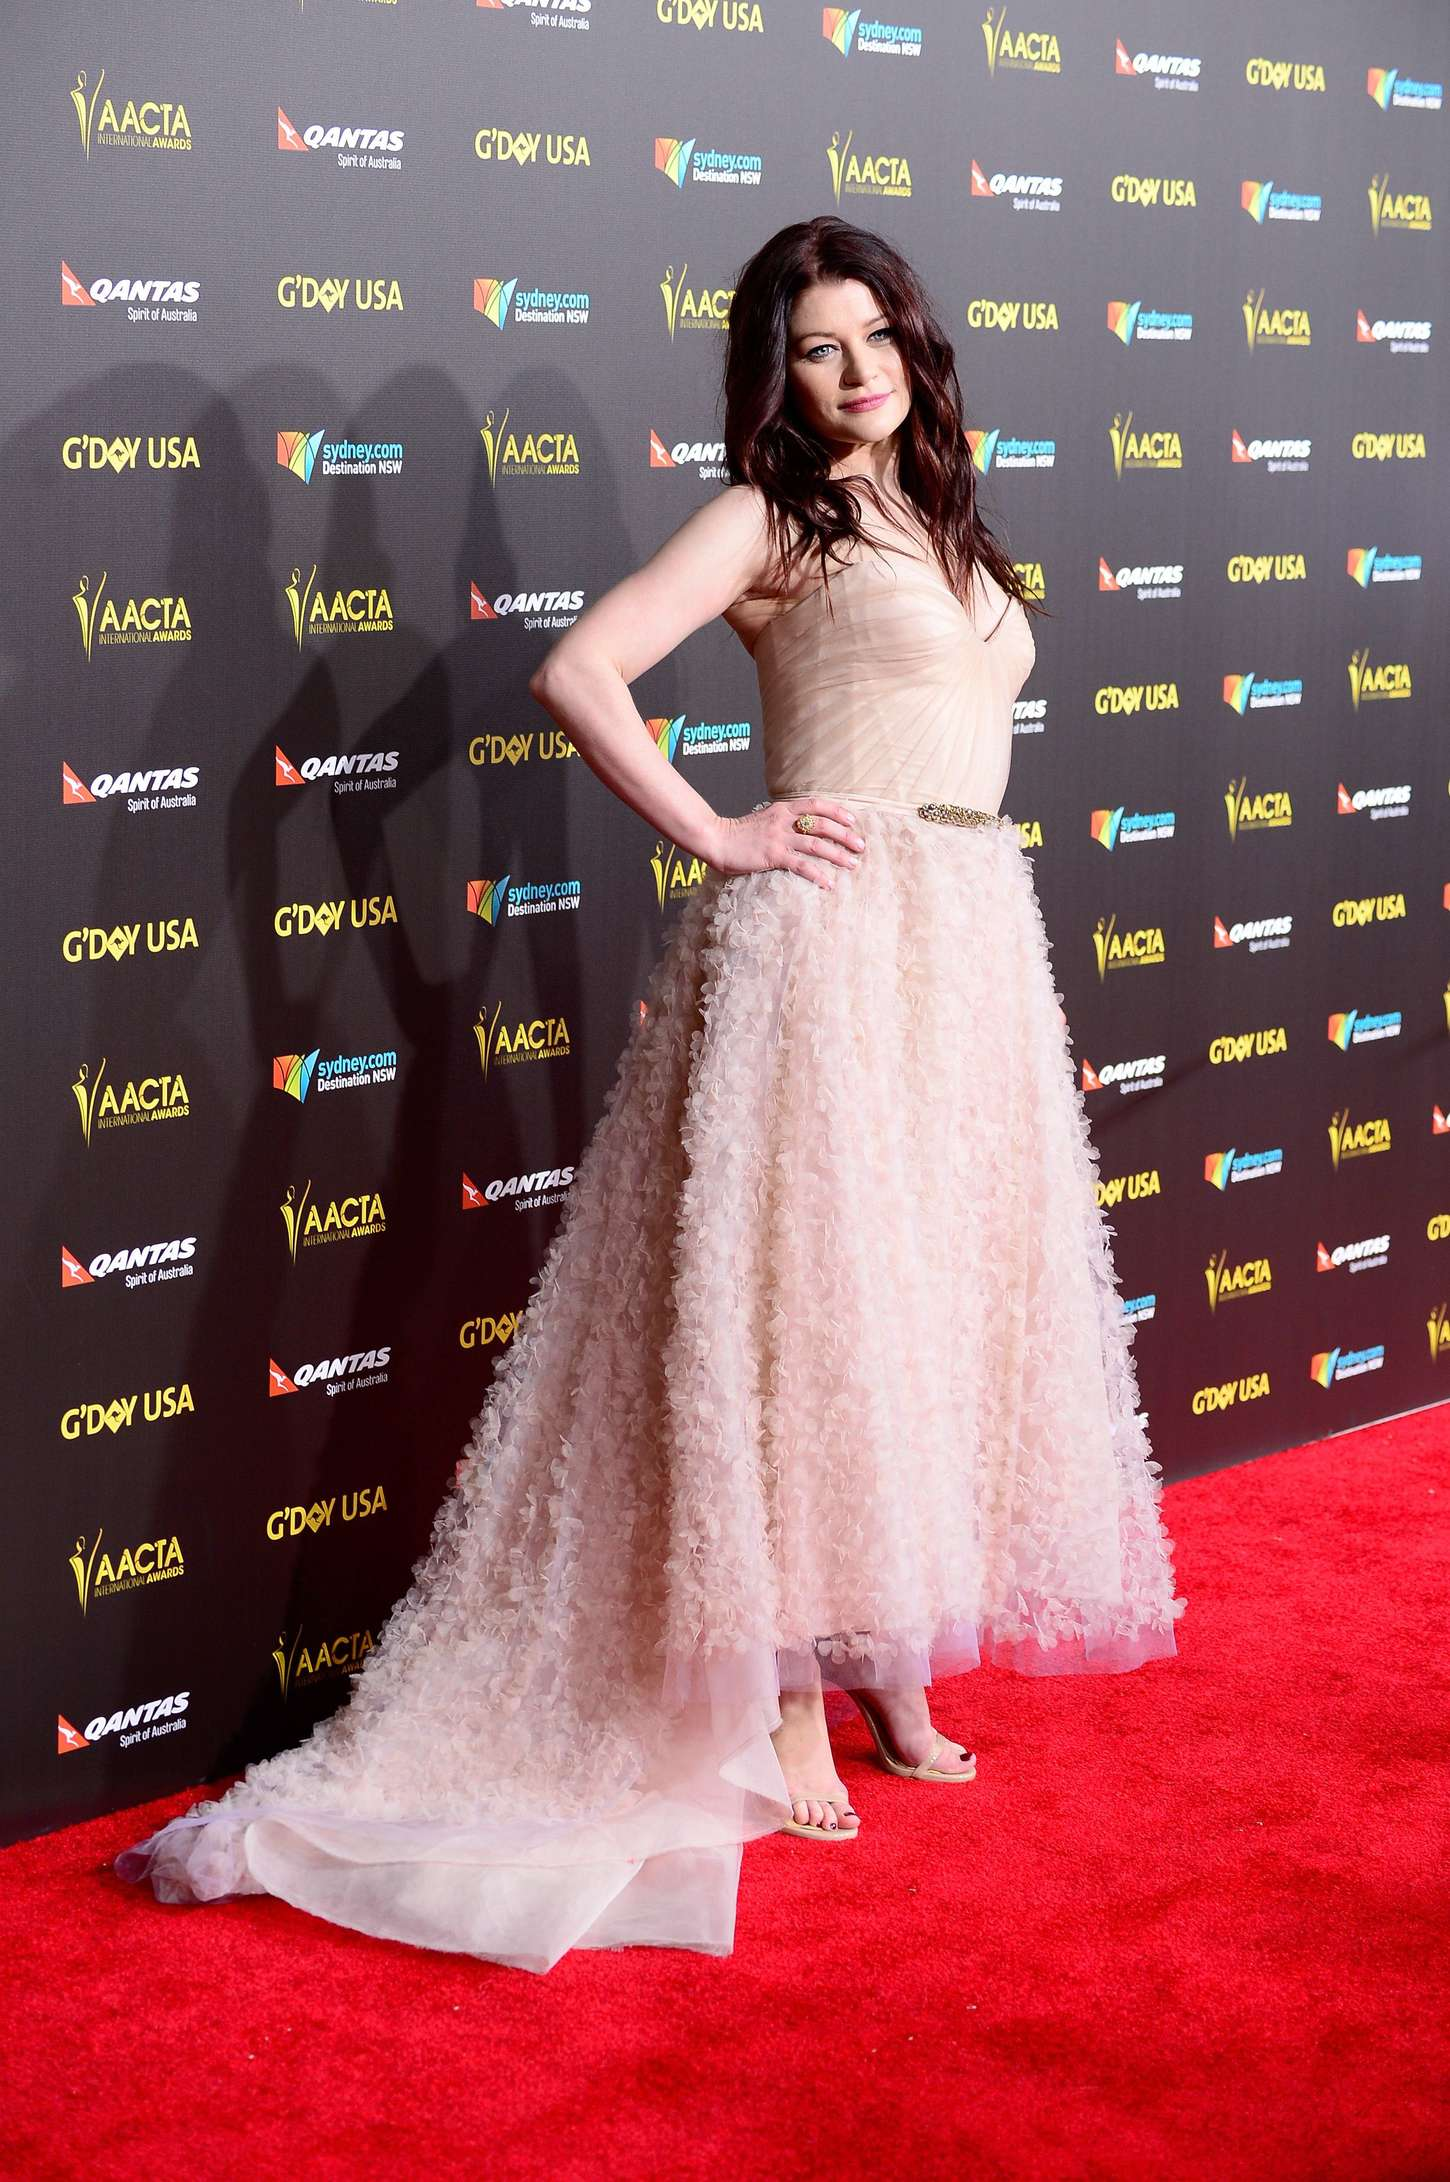 Emilie de Ravin GDay USA GALA featuring the AACTA International Awards presented by QANTAS in Los Angeles